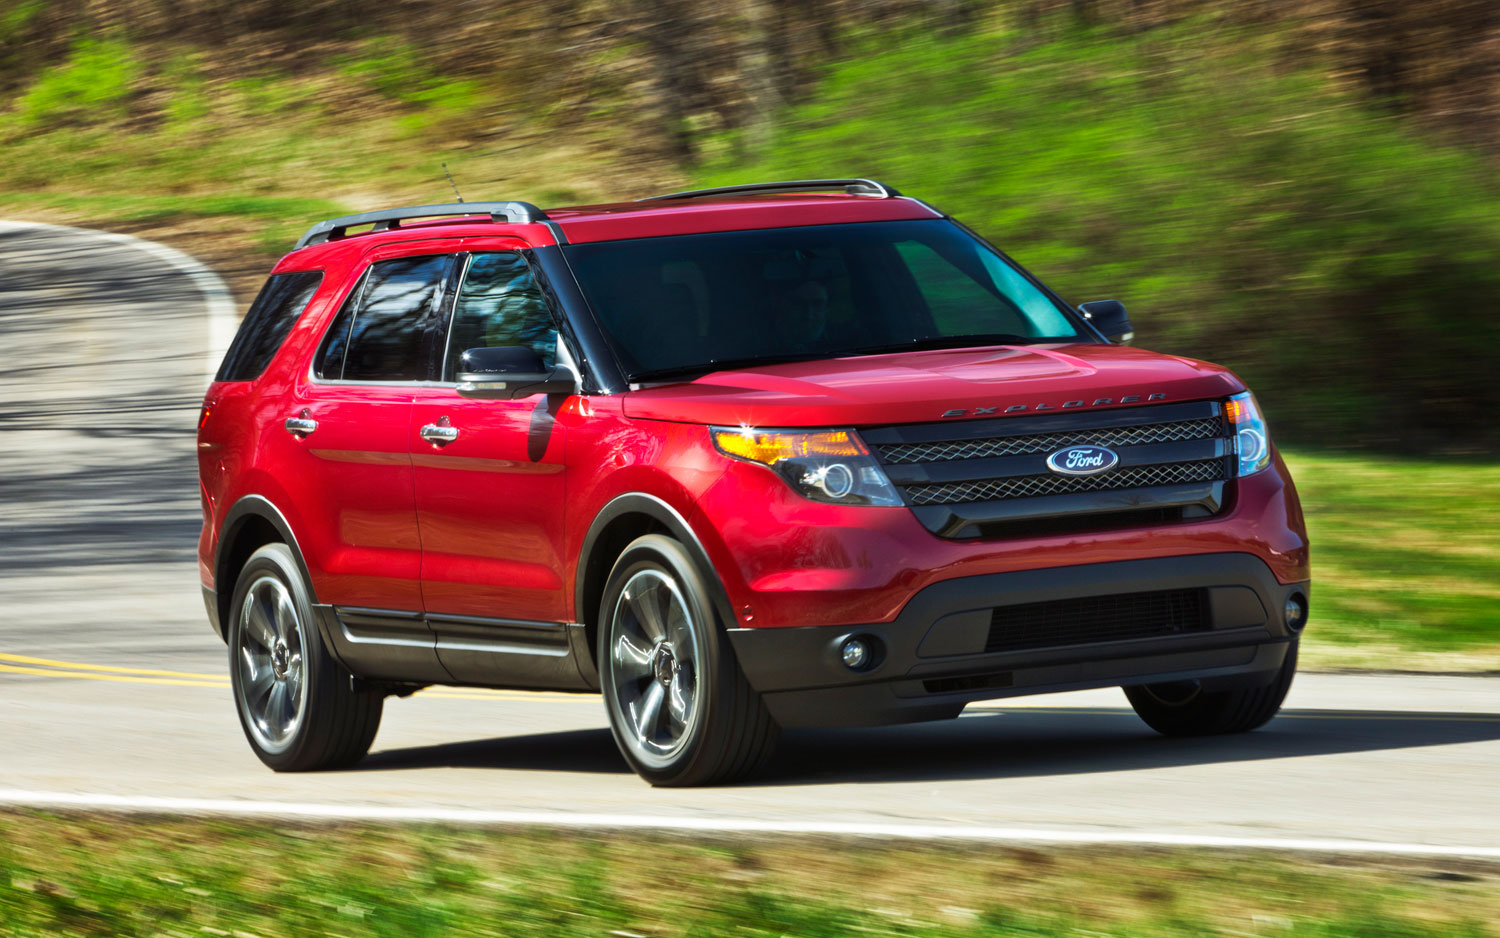 2013 Ford Explorer Sport Front Three Quarters View Red1